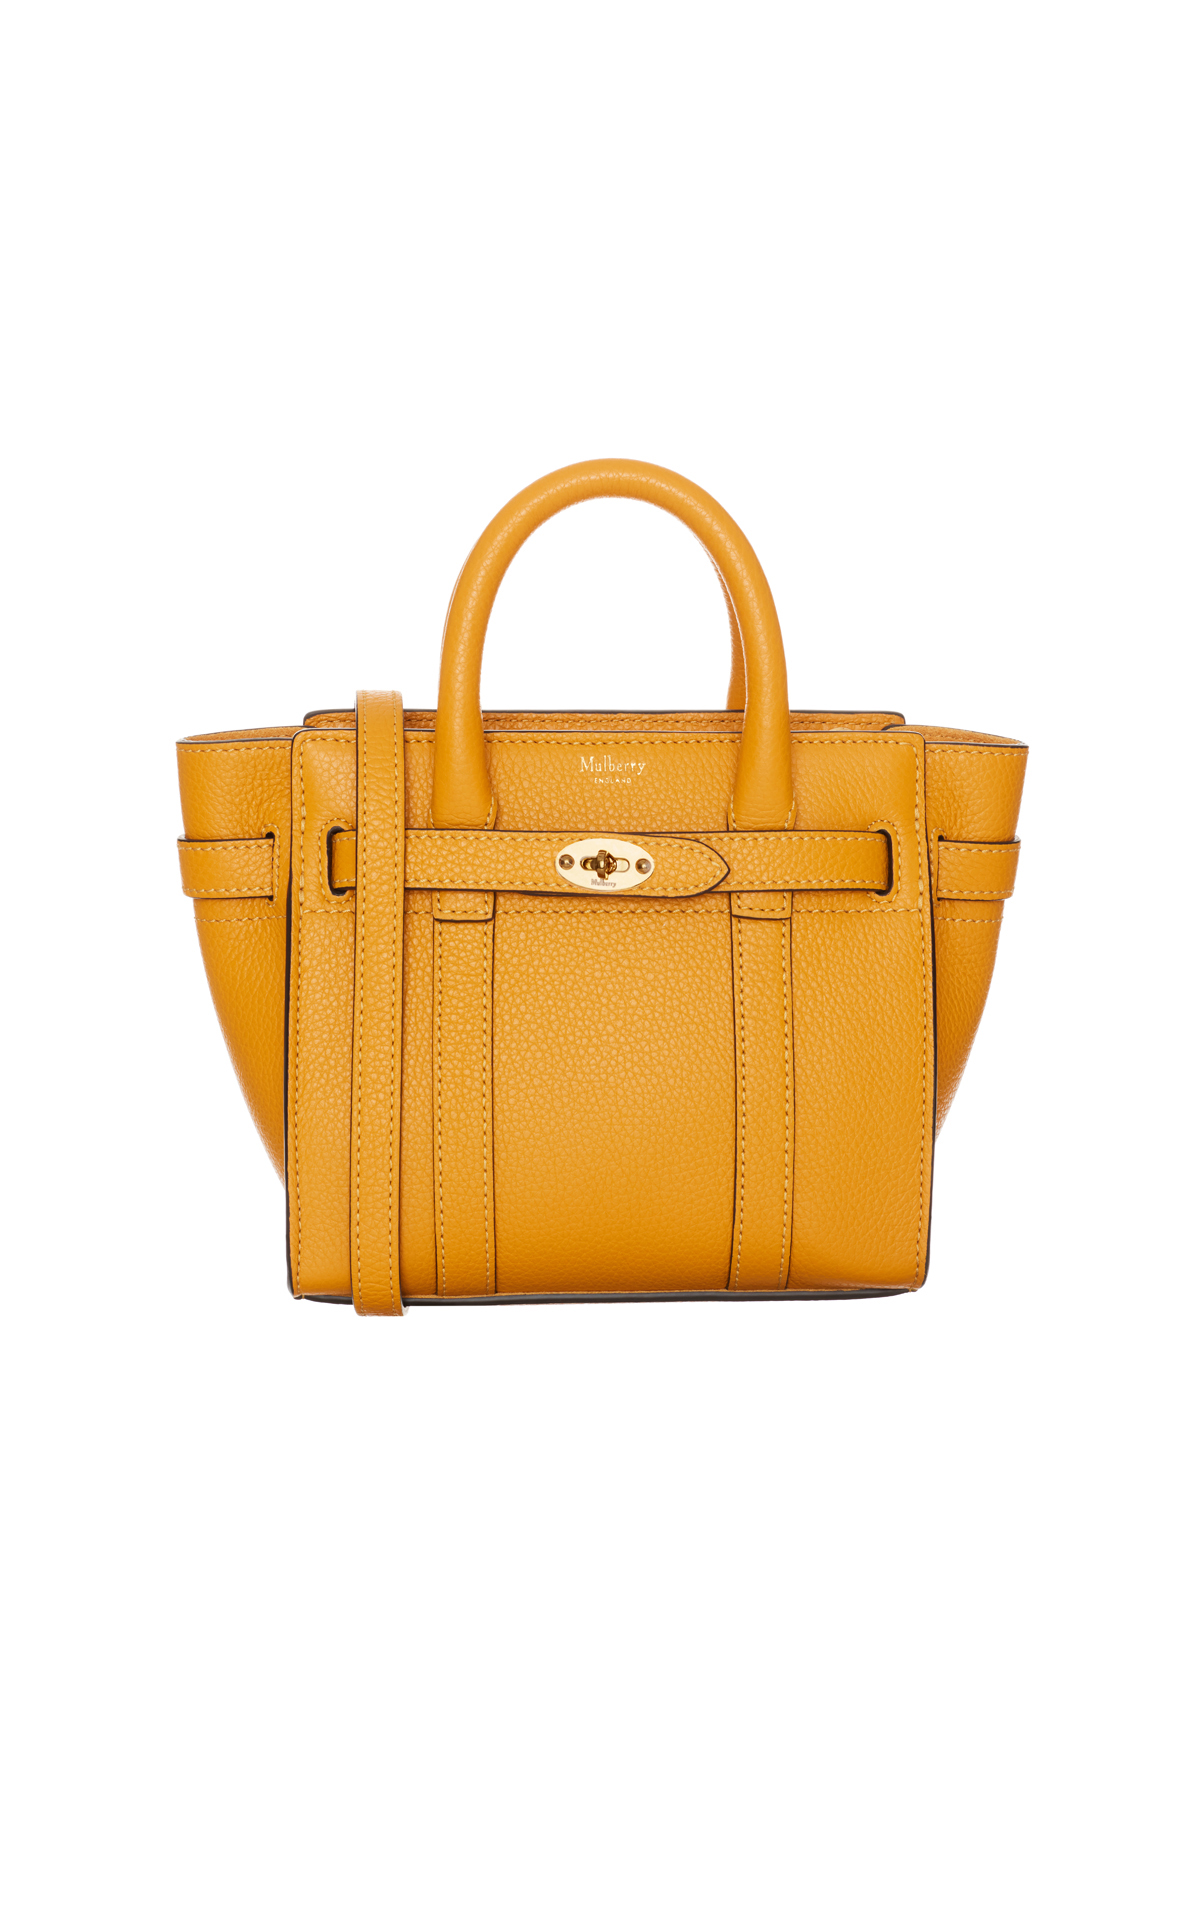 Mulberry Micro zipped Bayswater from Bicester Village